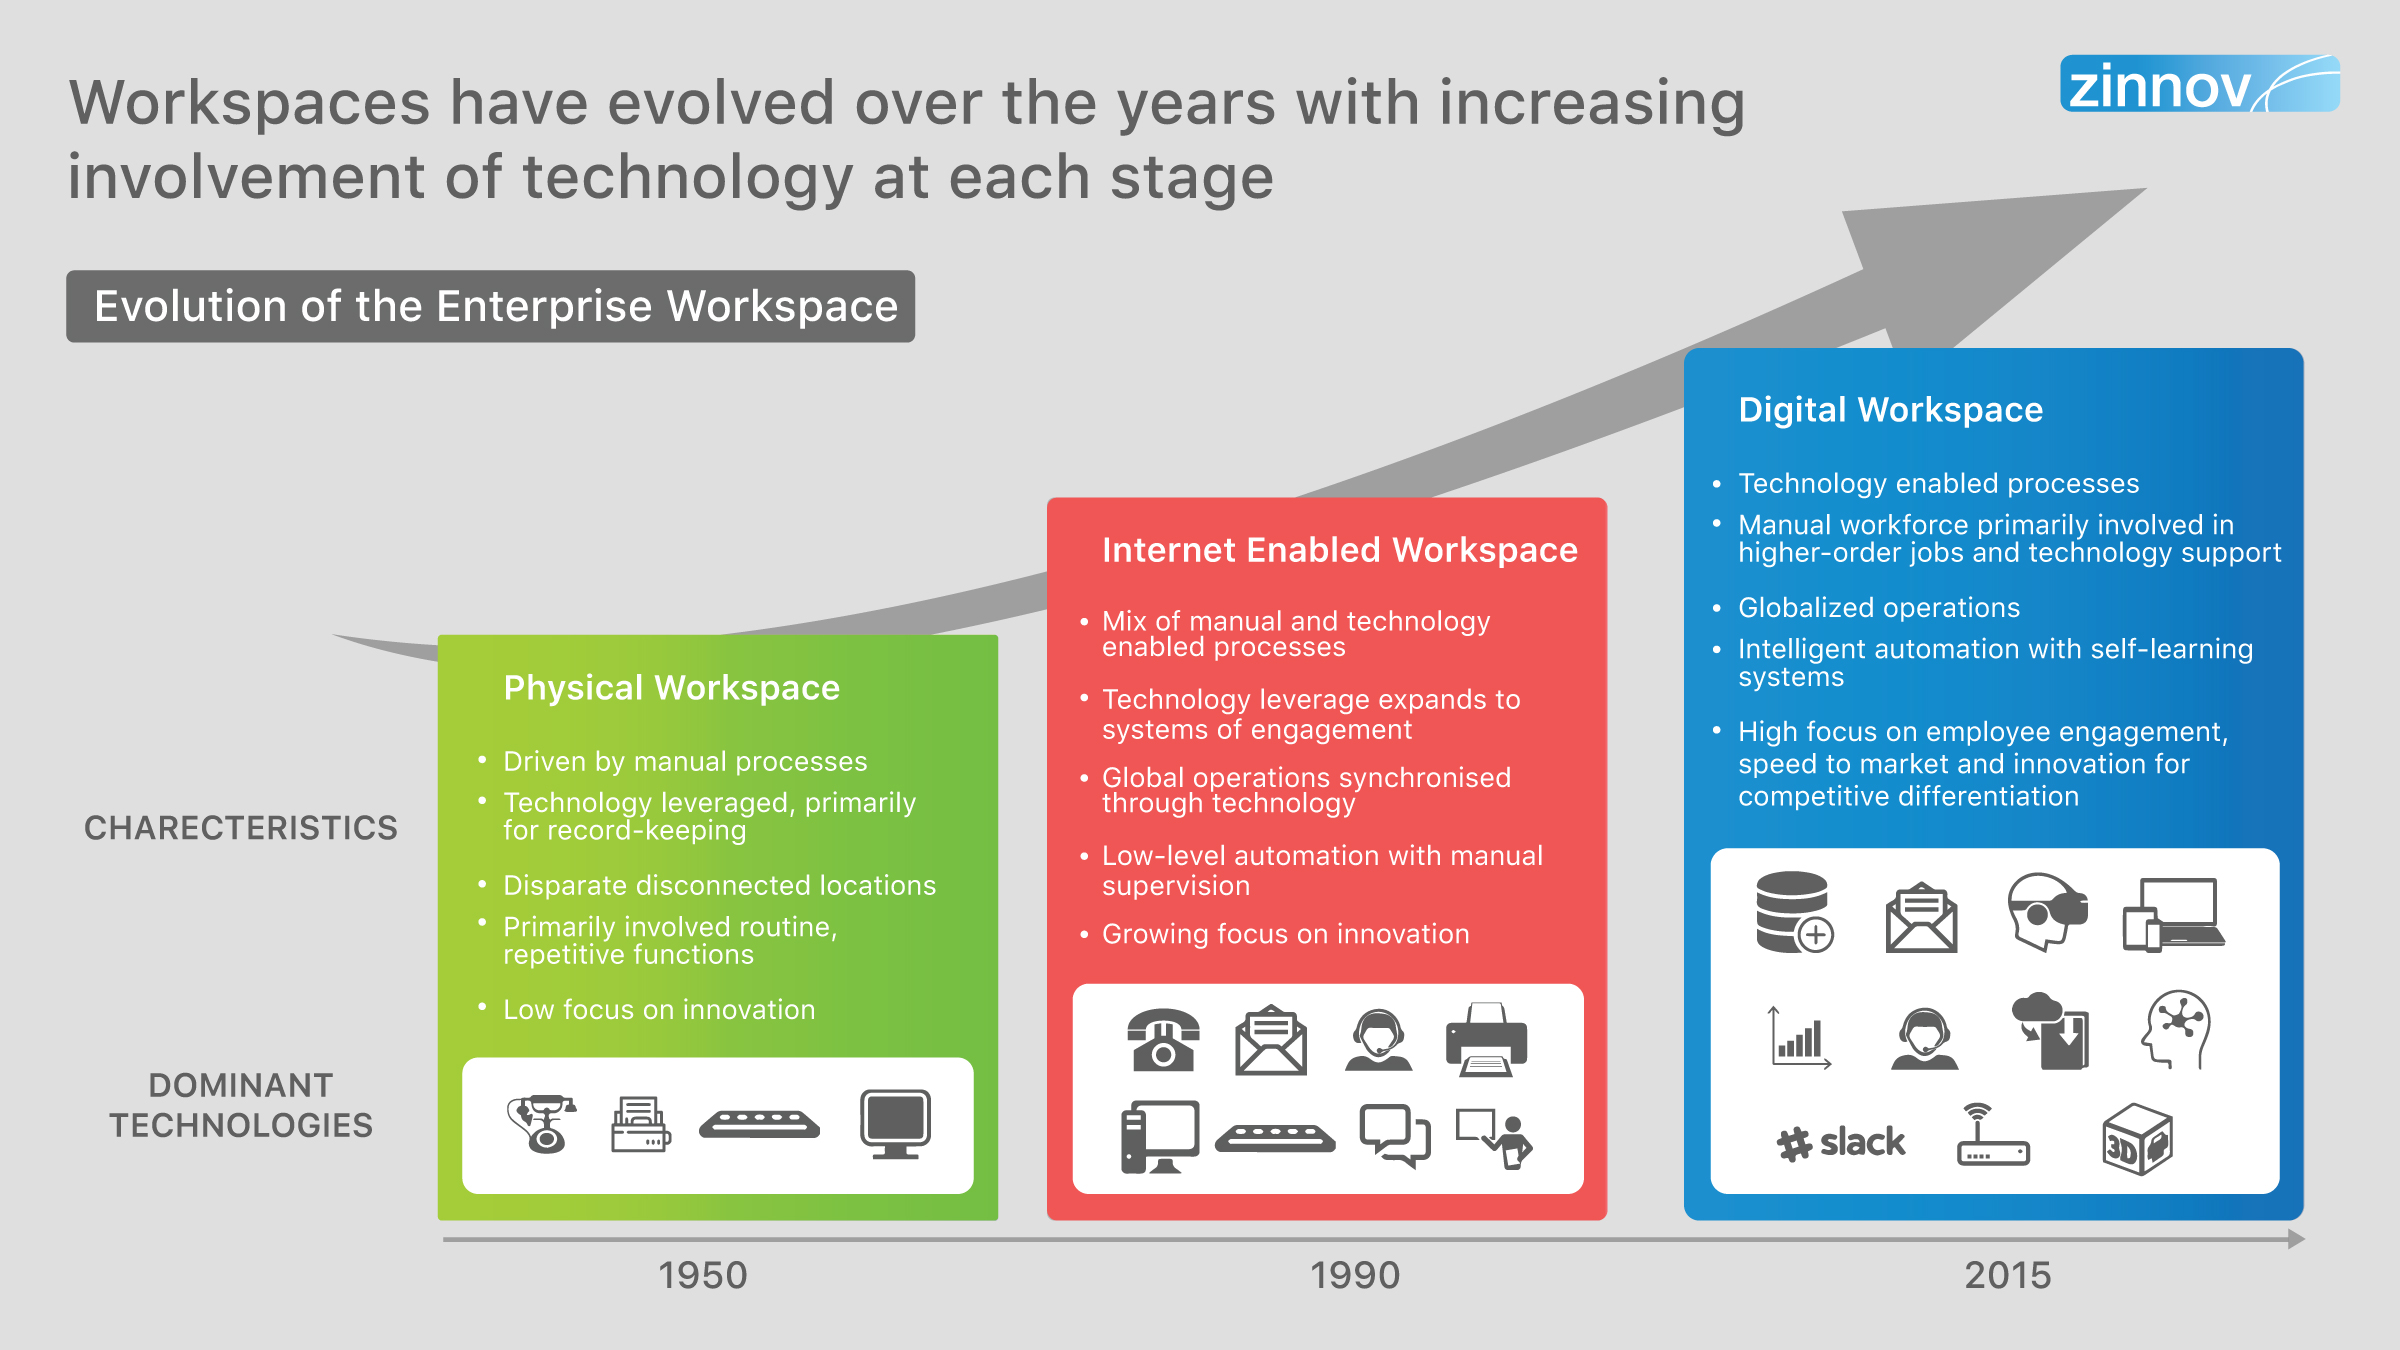 Evolution of Workspaces